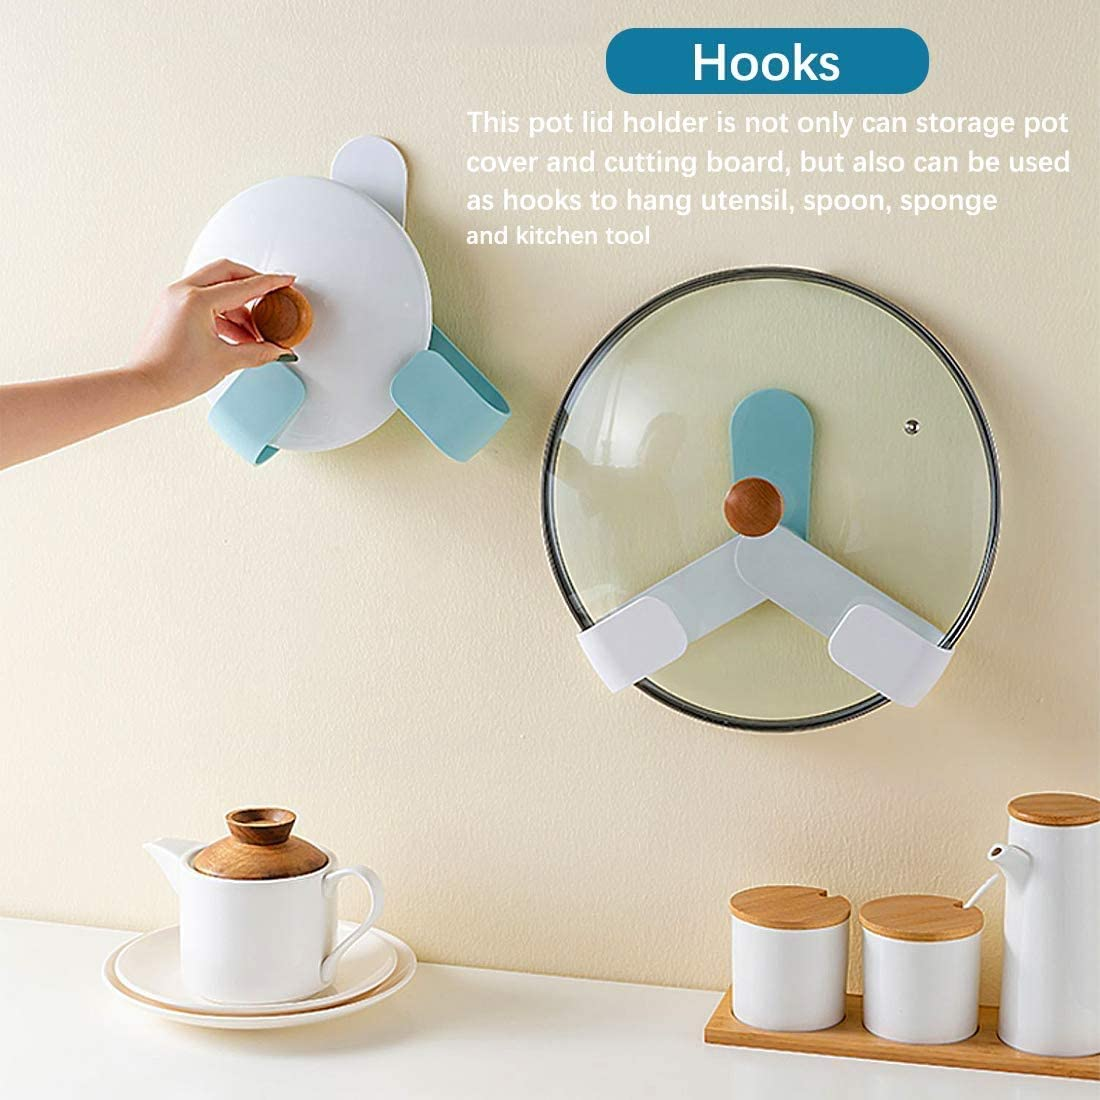 Blue home magic Self Adhesive Rotatable Pon Lid Holder Pot Lid Rack 2 Pack Cutting Board Storage Adjustable Hanging Wall-Mounted Pan Cover Organizer Multi-Functional Kitchen Storage Rack